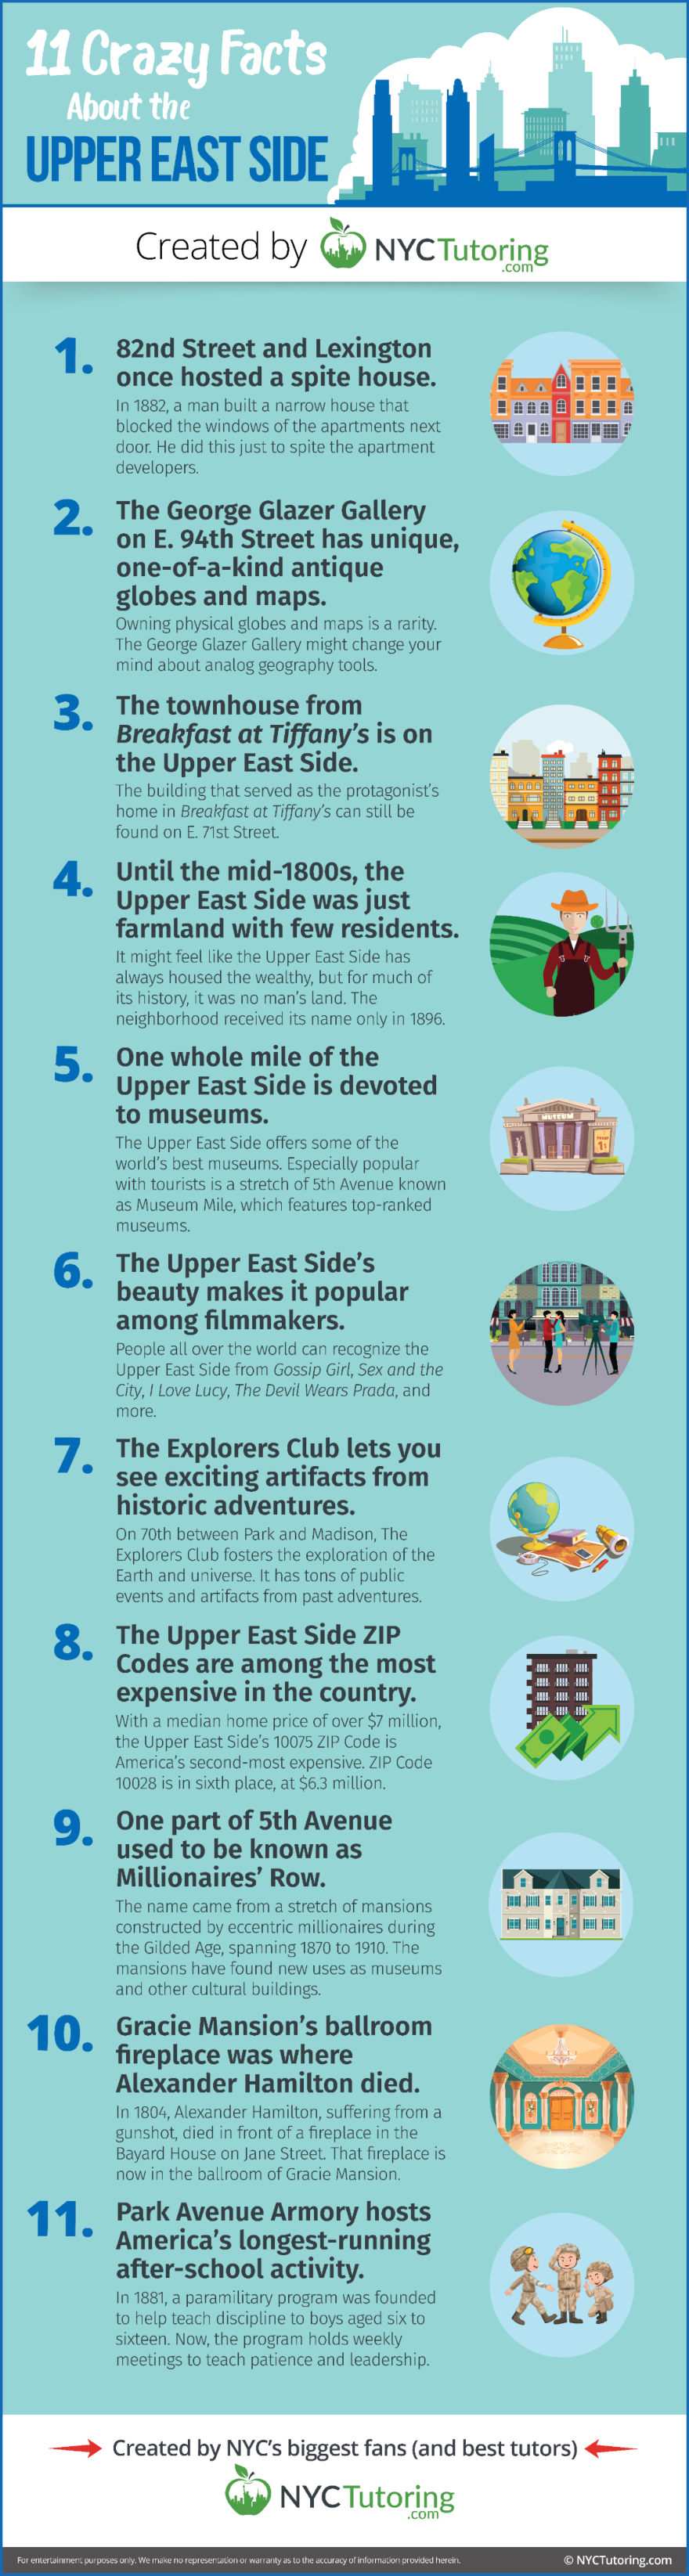 11 Crazy Facts About the Upper East Side